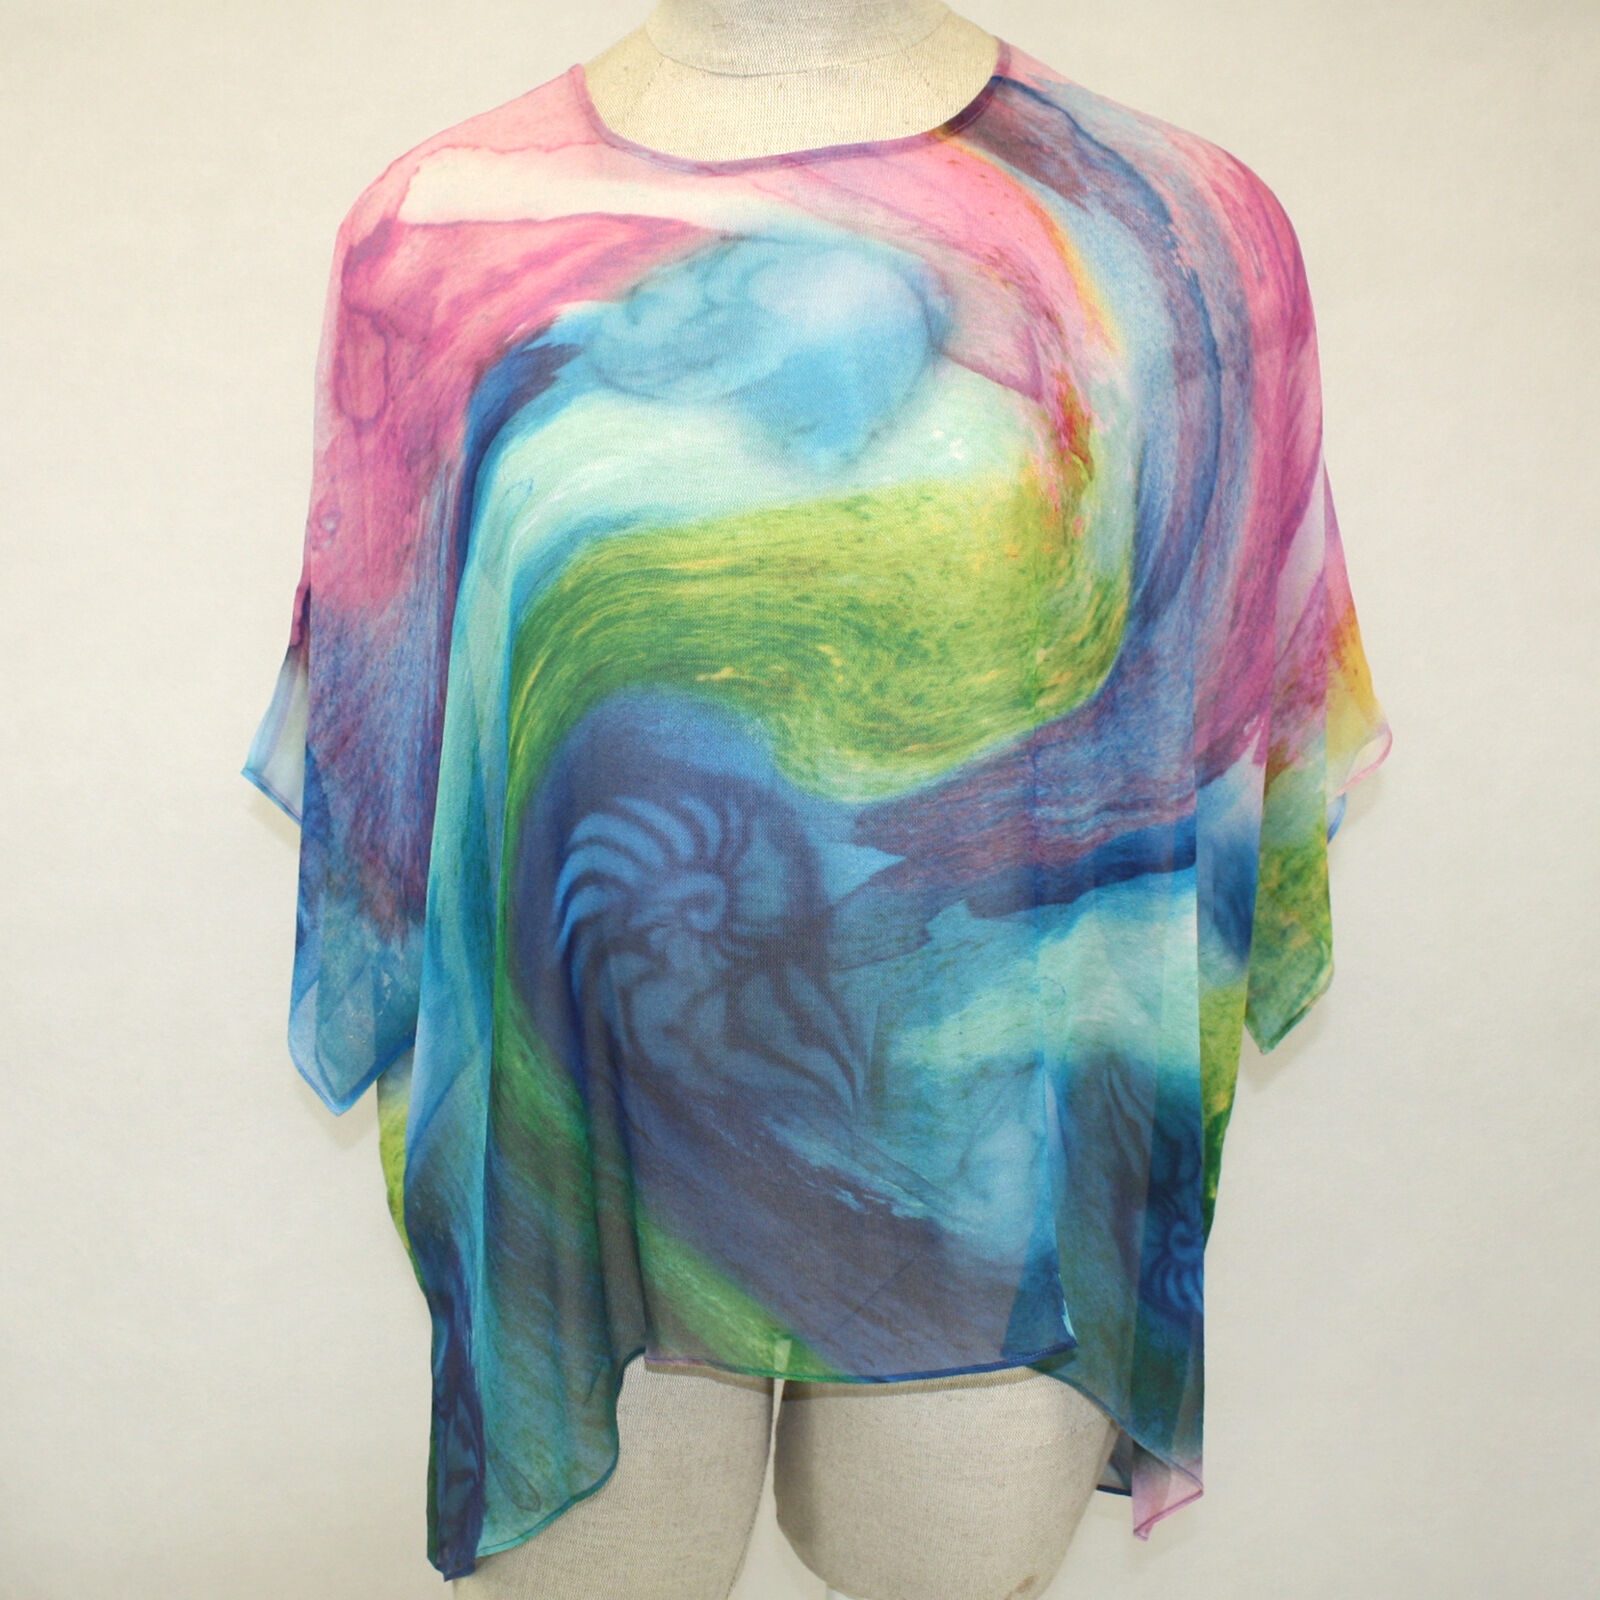 NEW NWT Cocoon House Odyssey Art Sheer 100% Silk Pointed Blouse Top Large   XL